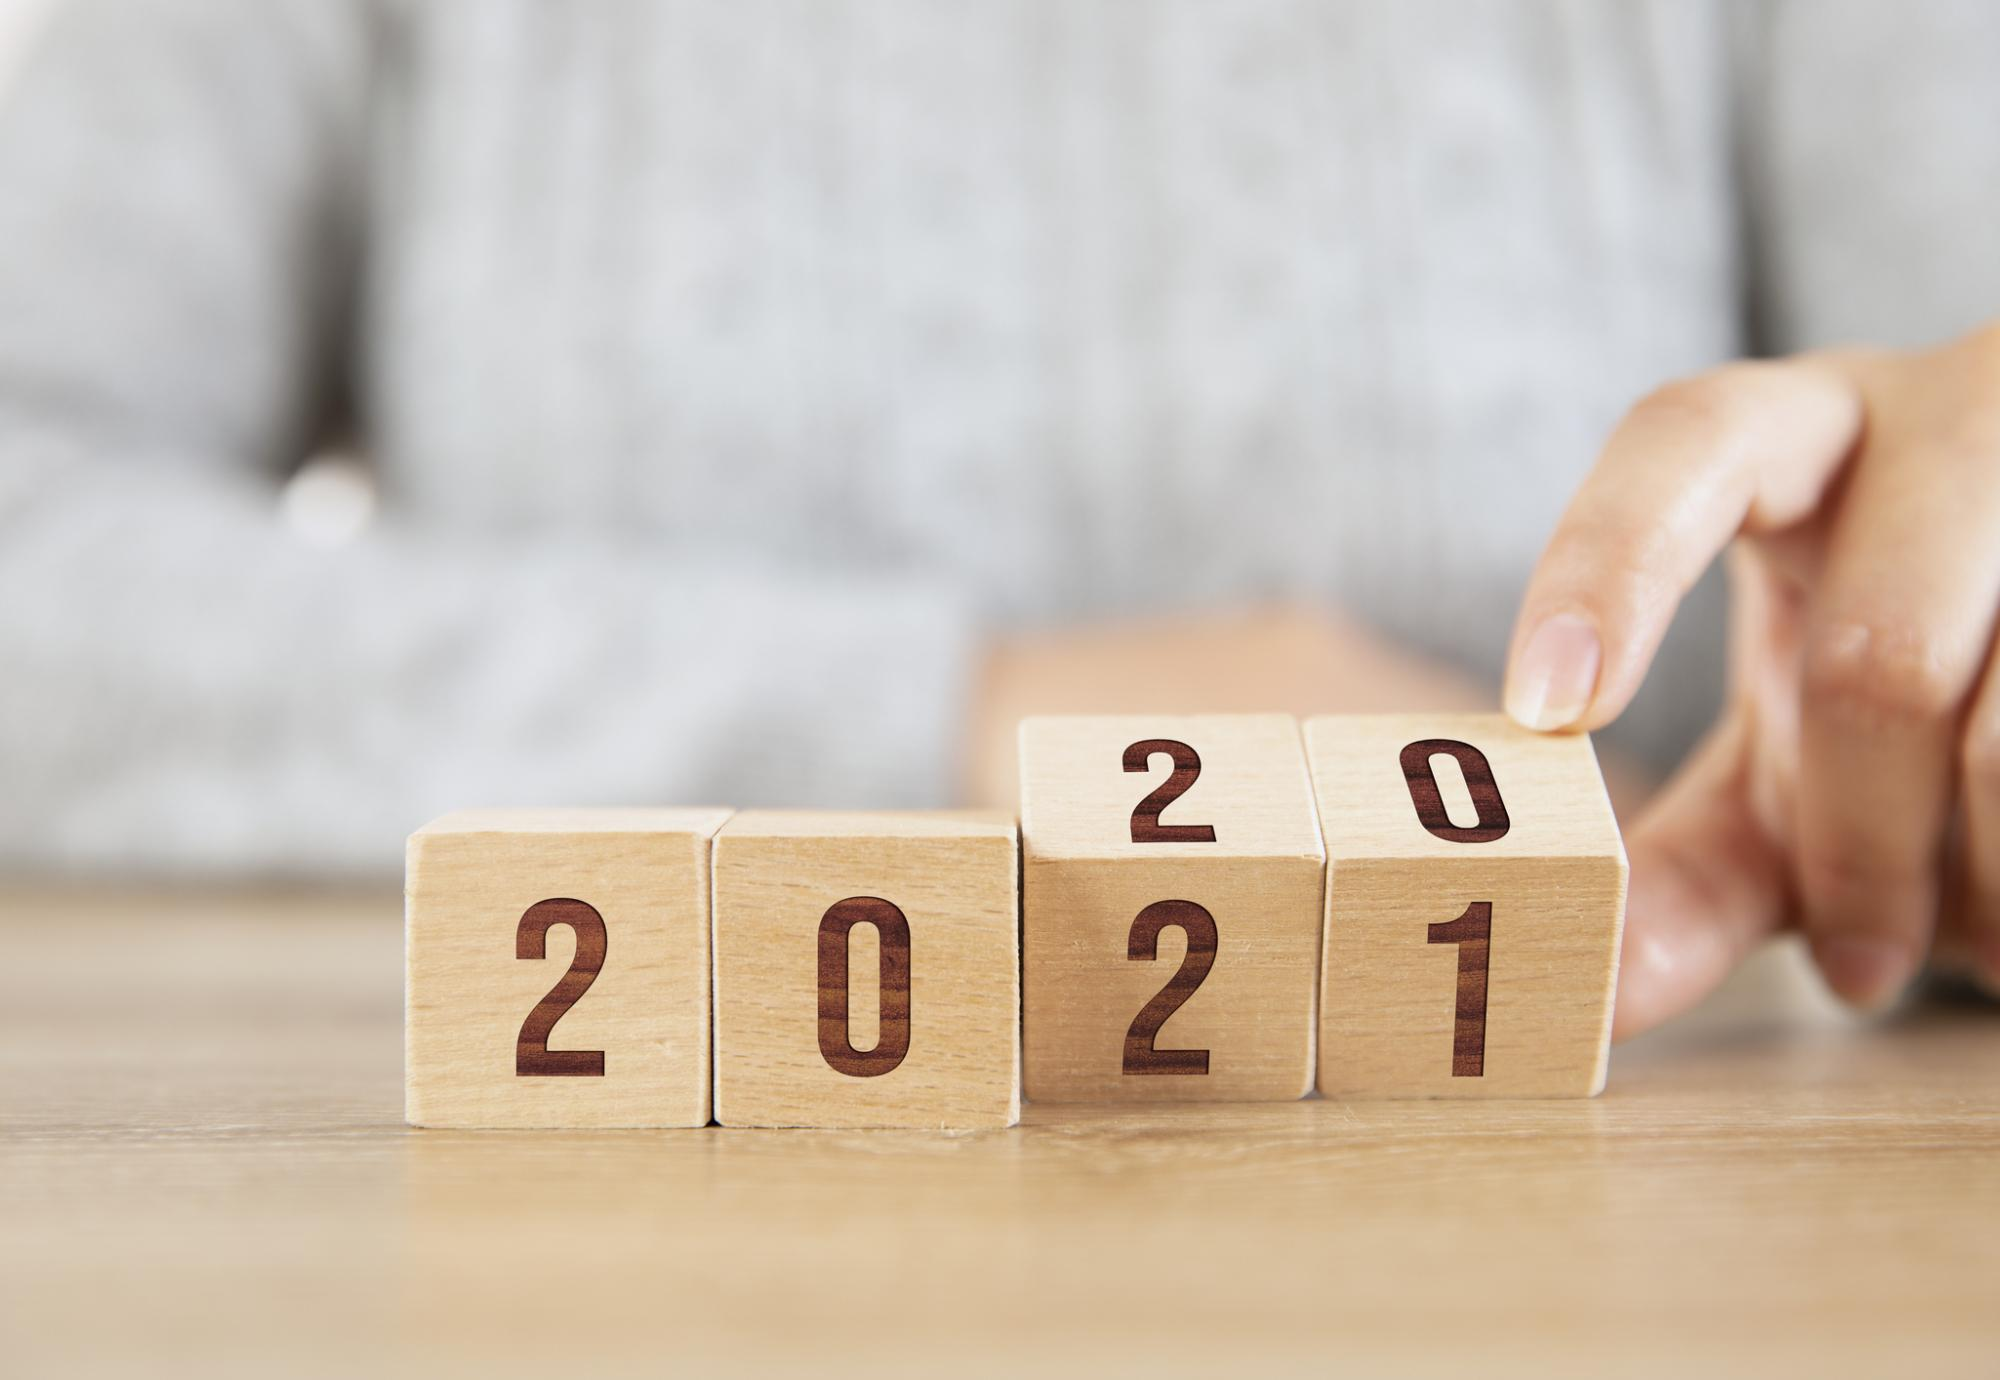 Woman turns over from 2020 to 2021.